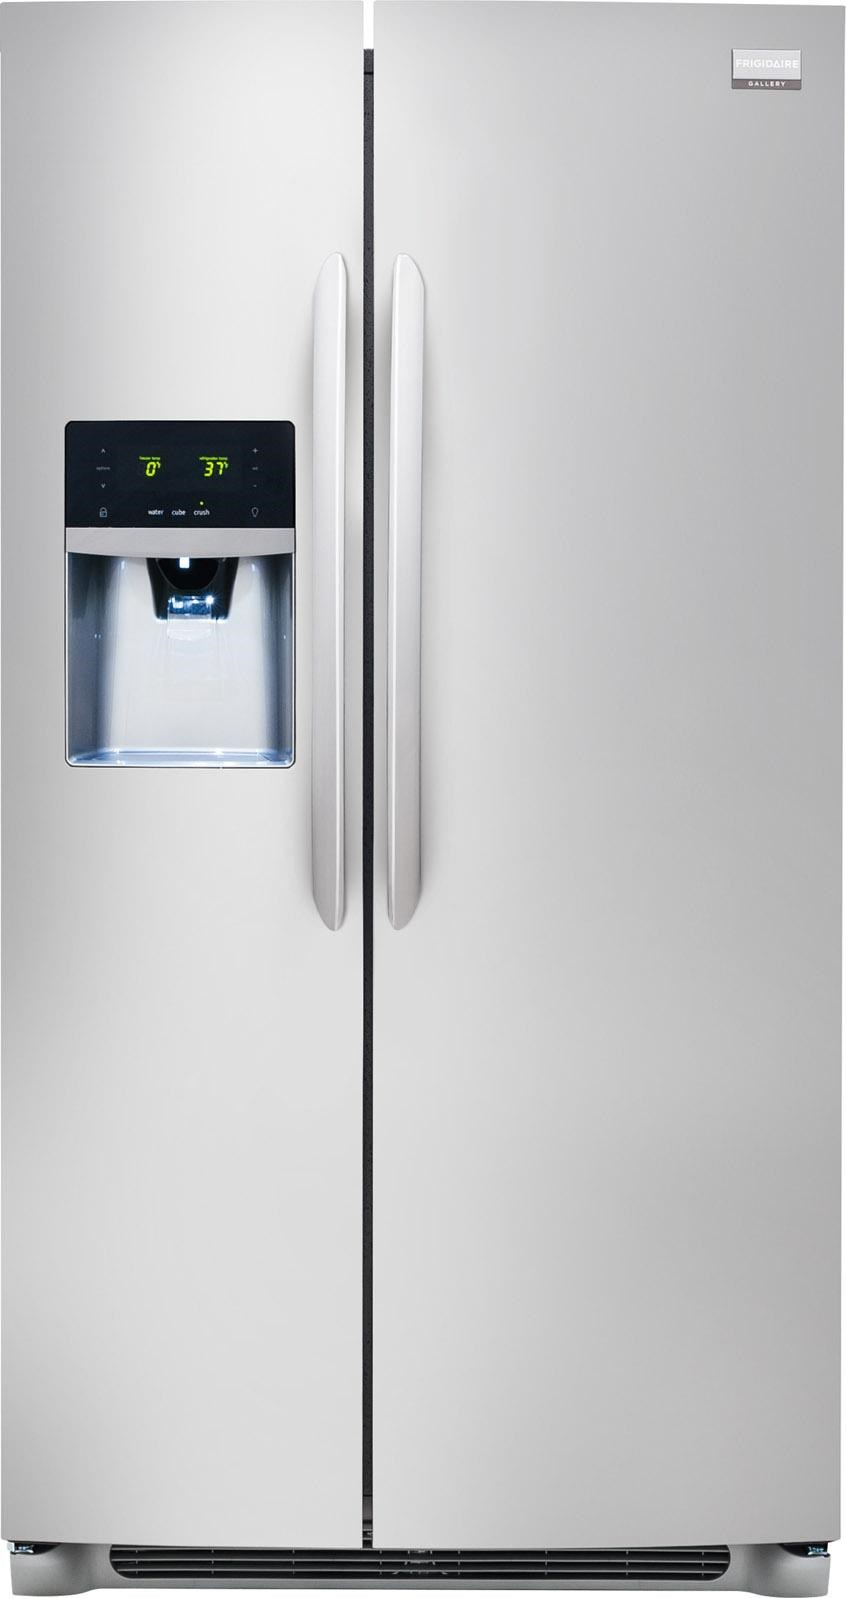 gallery energy star 26 cu ft side by side refrigerator with rh wilcoxfurniture com